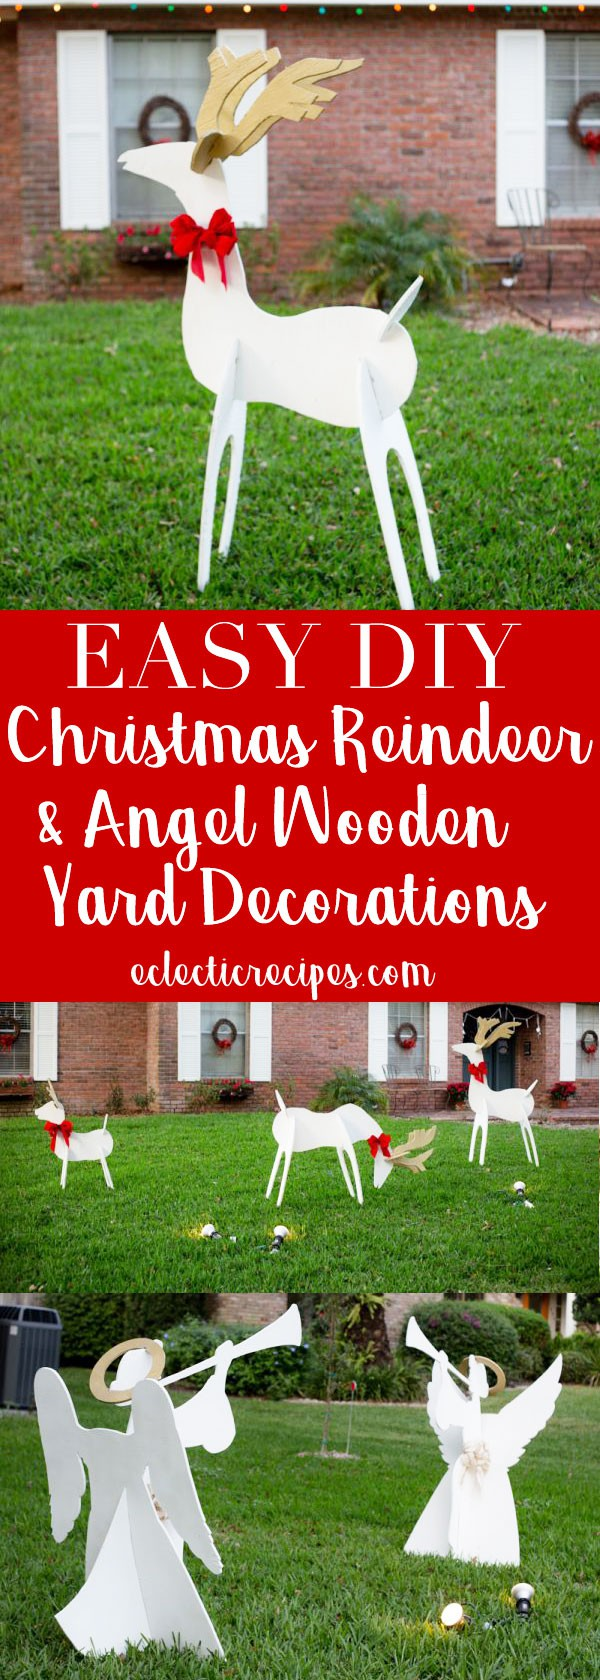 Eclectic Recipes » Christmas Reindeer and Angel Wooden ...